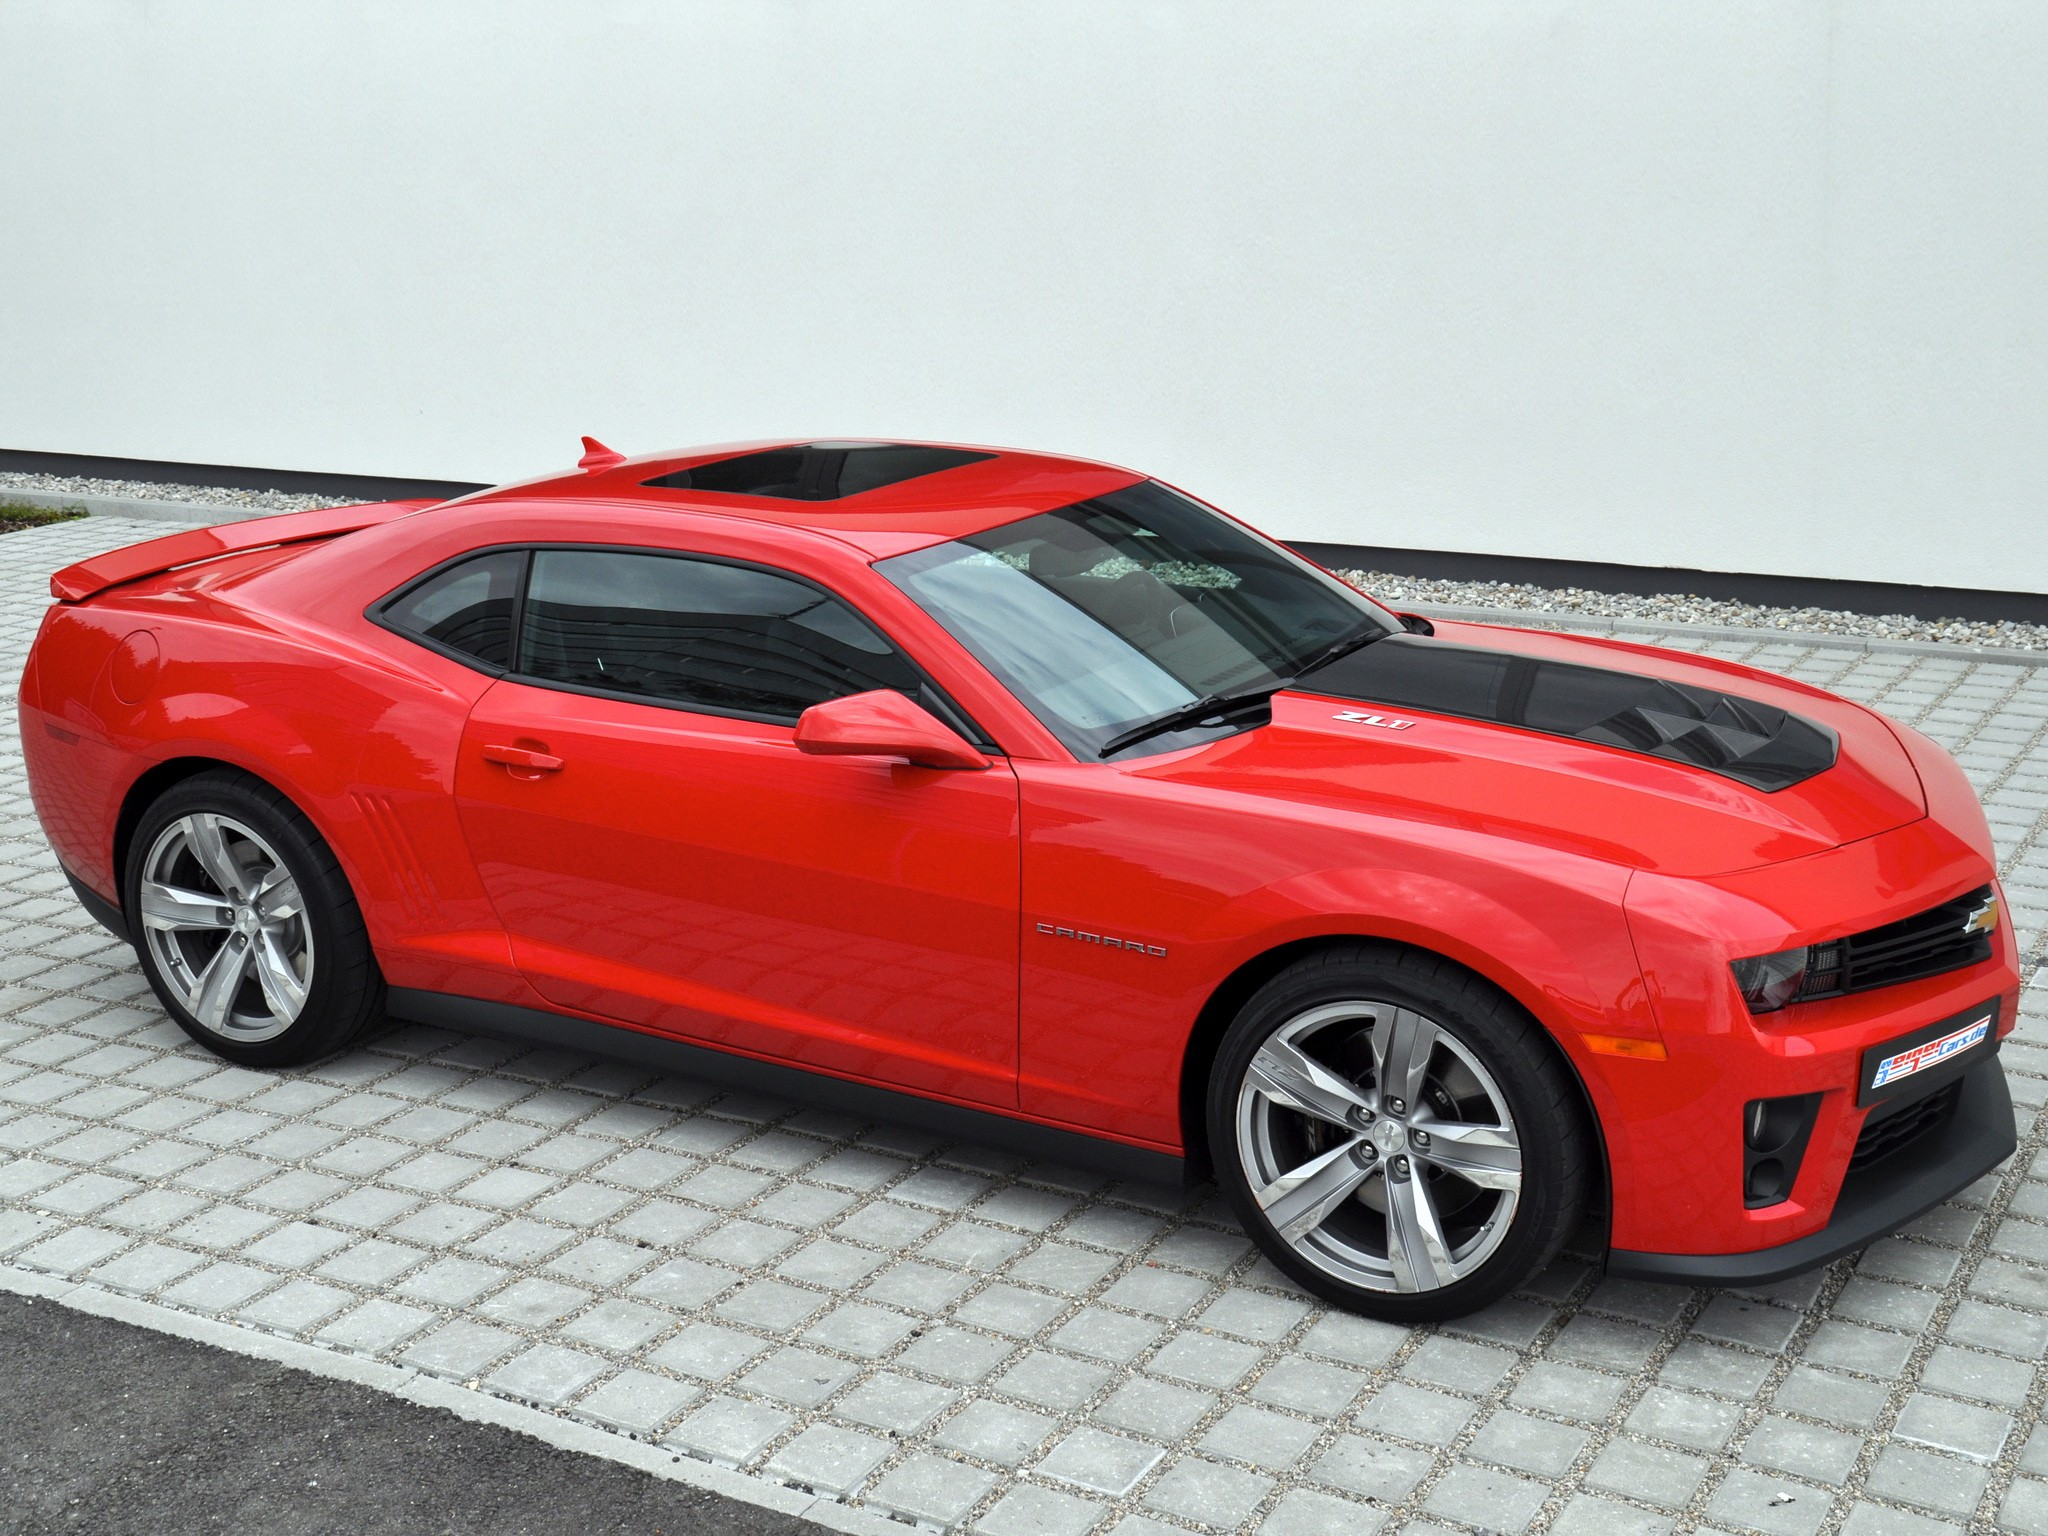 chevrolet camaro zl1 specs 2012 2013 2014 2015 2016. Cars Review. Best American Auto & Cars Review